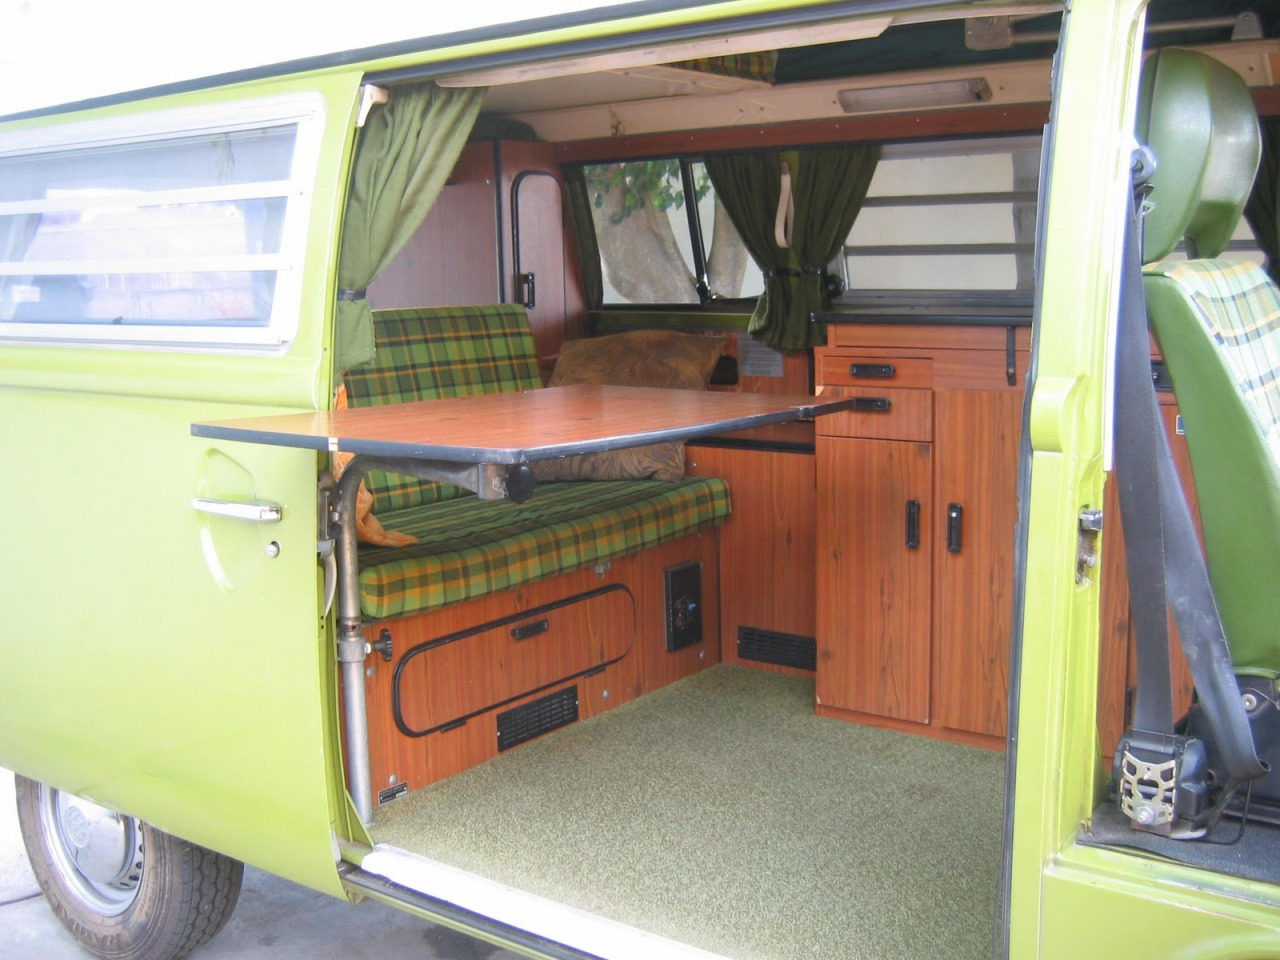 Goodordering campervan